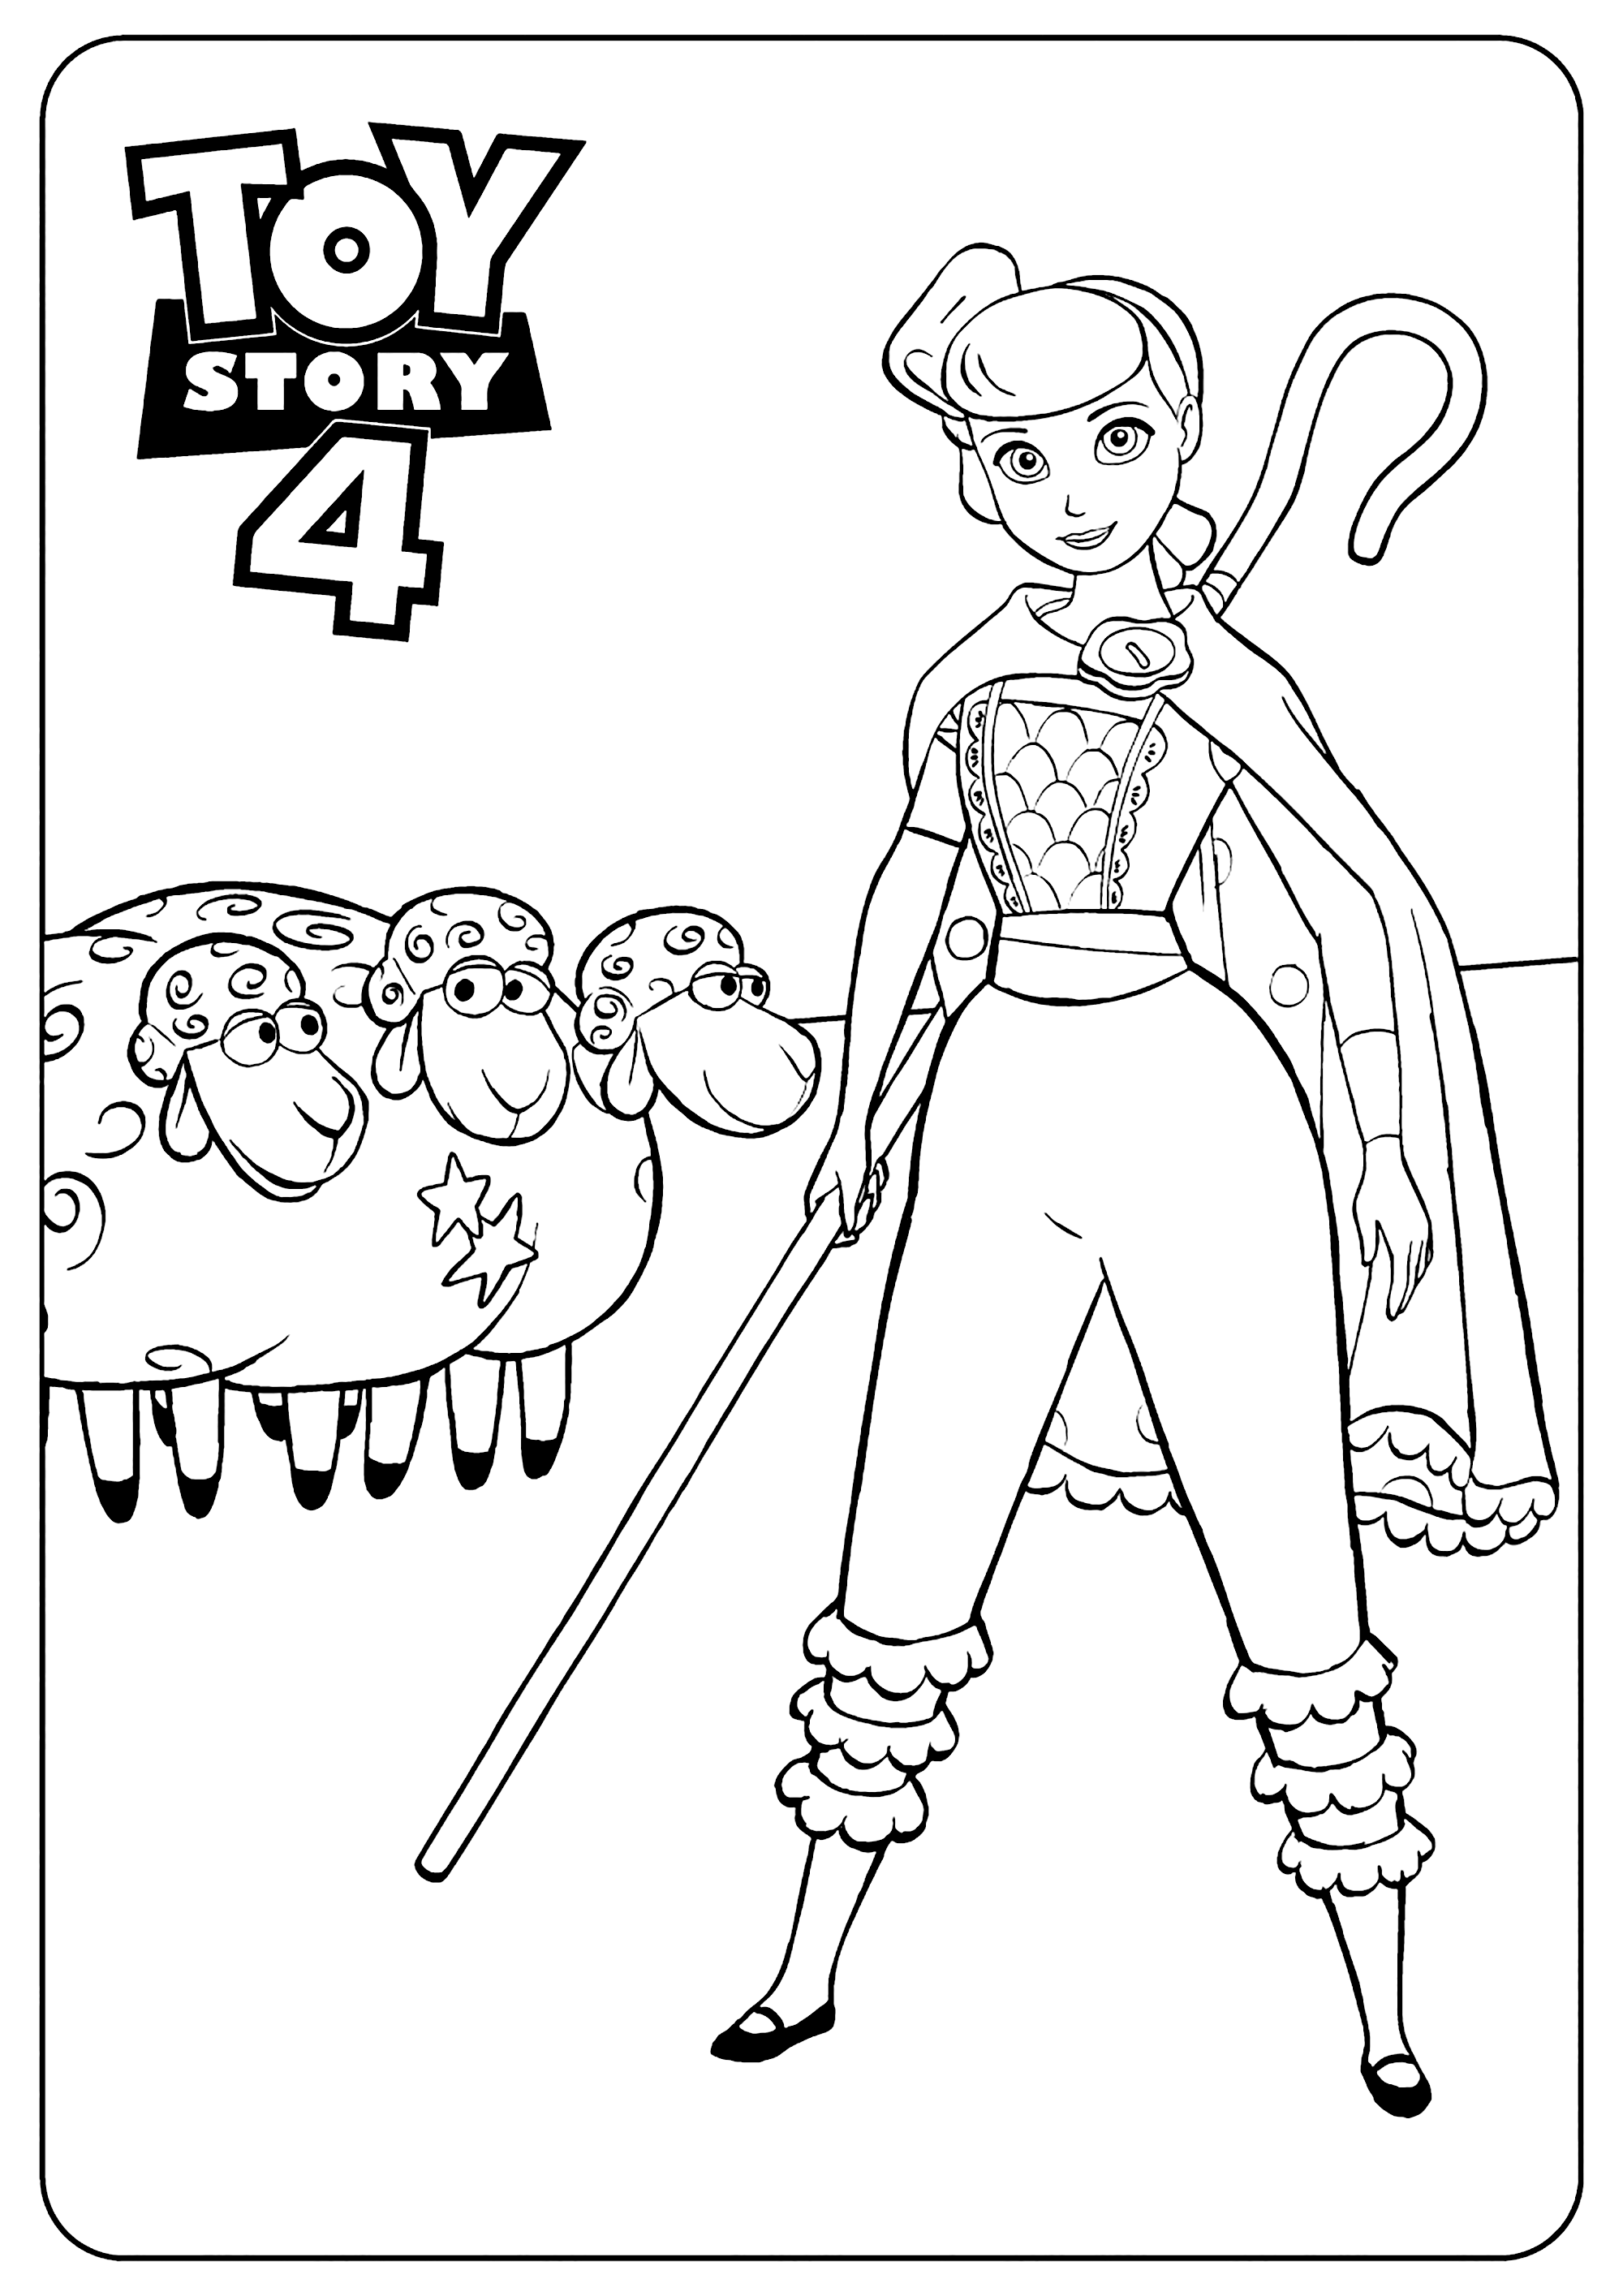 toy story 4 printable coloring pages forky colouring pages get coloring pages toy printable coloring pages 4 story